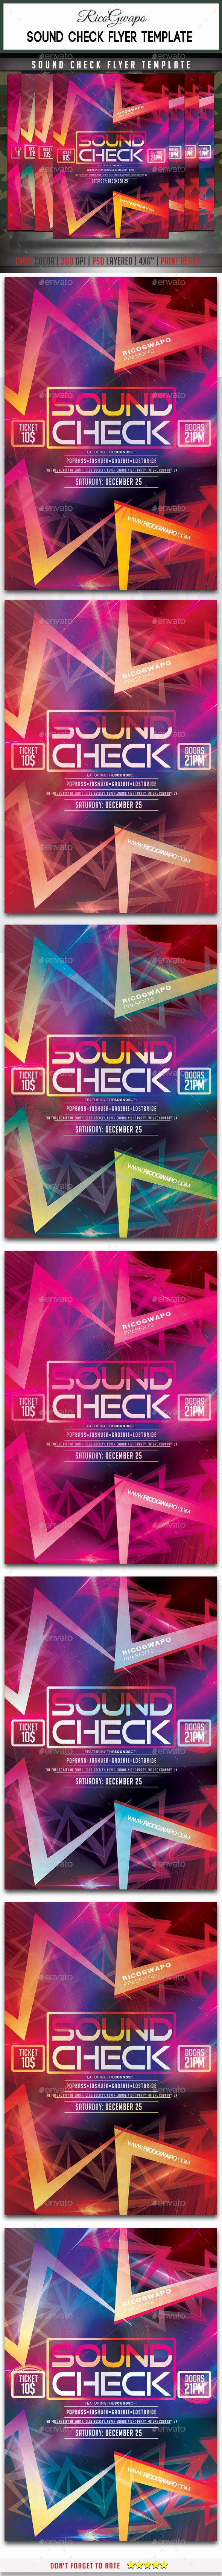 GraphicRiver Sound Check Flyer Template 8916100